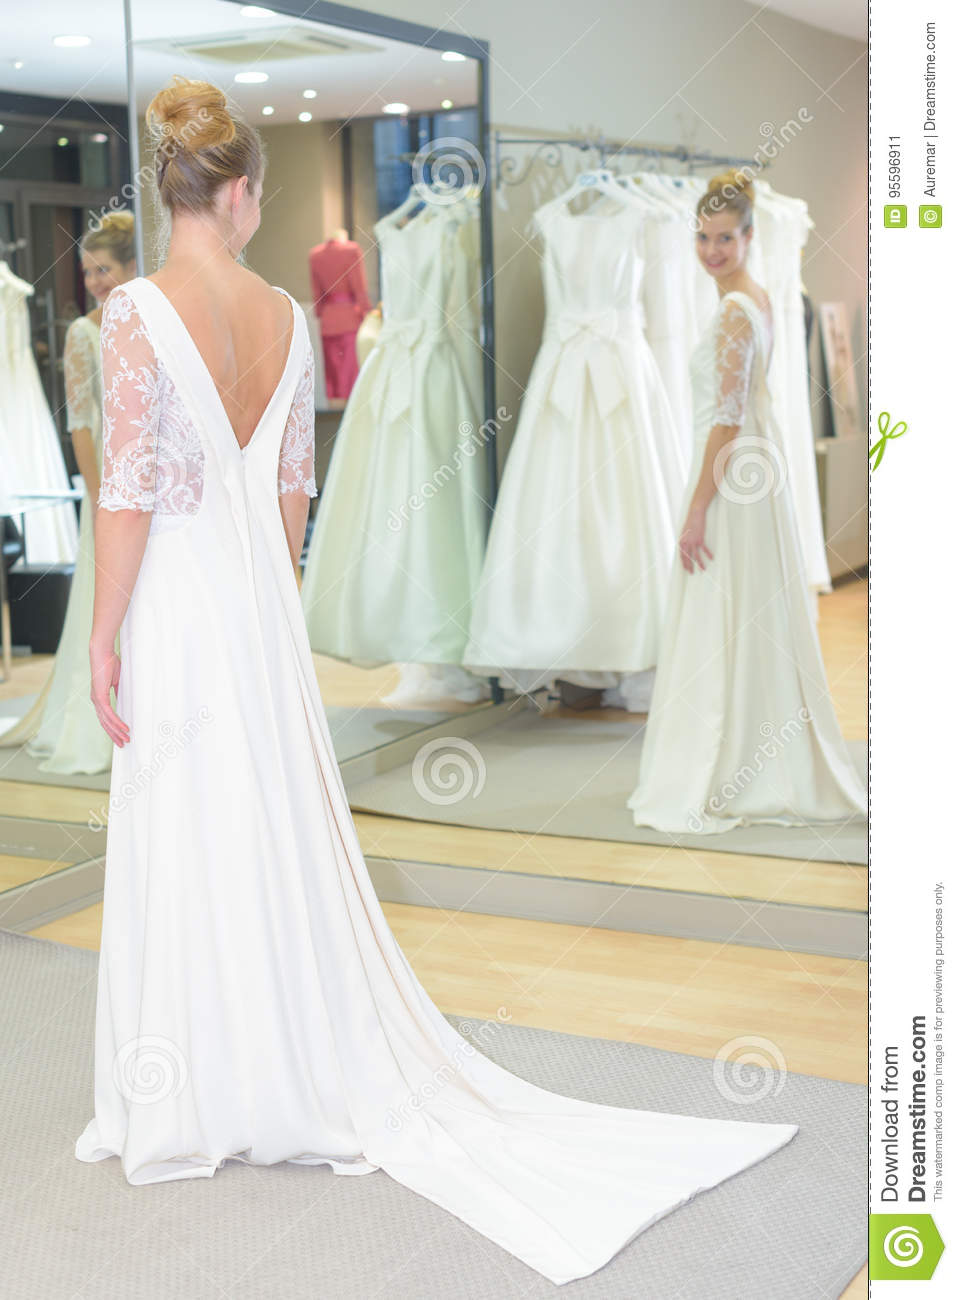 Bride To Be Trying On Wedding Dress Stock Image Image Of